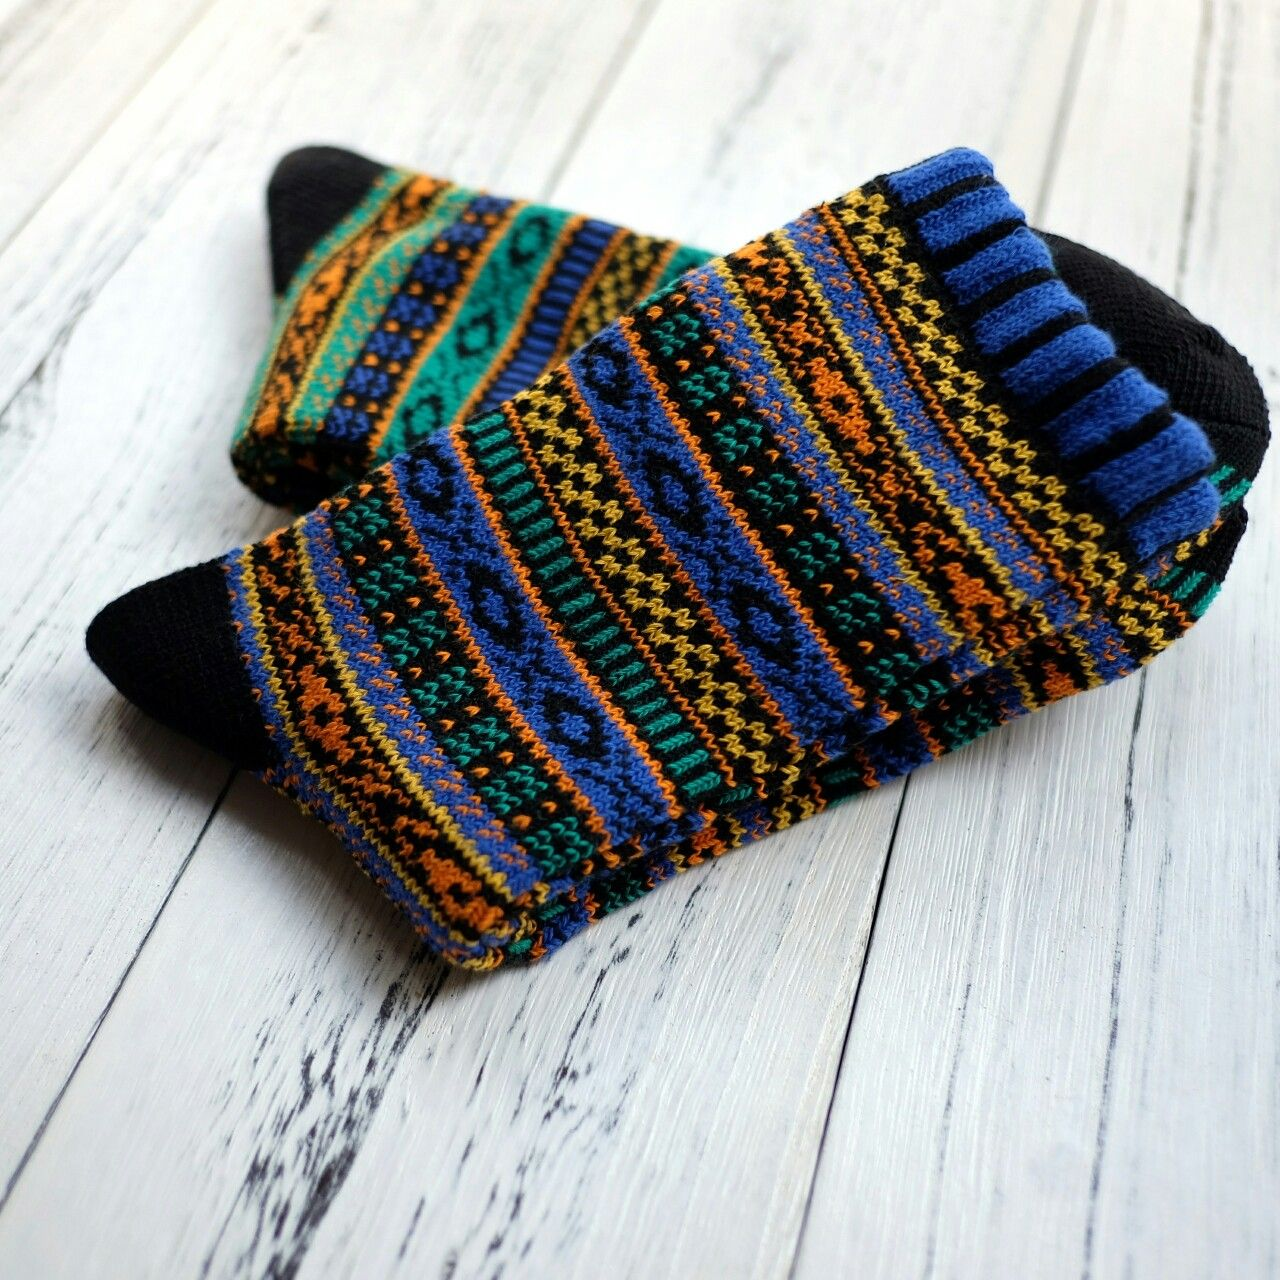 Tribal pattern tribal socks embroidery men socks boots tribal pattern tribal socks embroidery men socks boots socks street style bankloansurffo Image collections